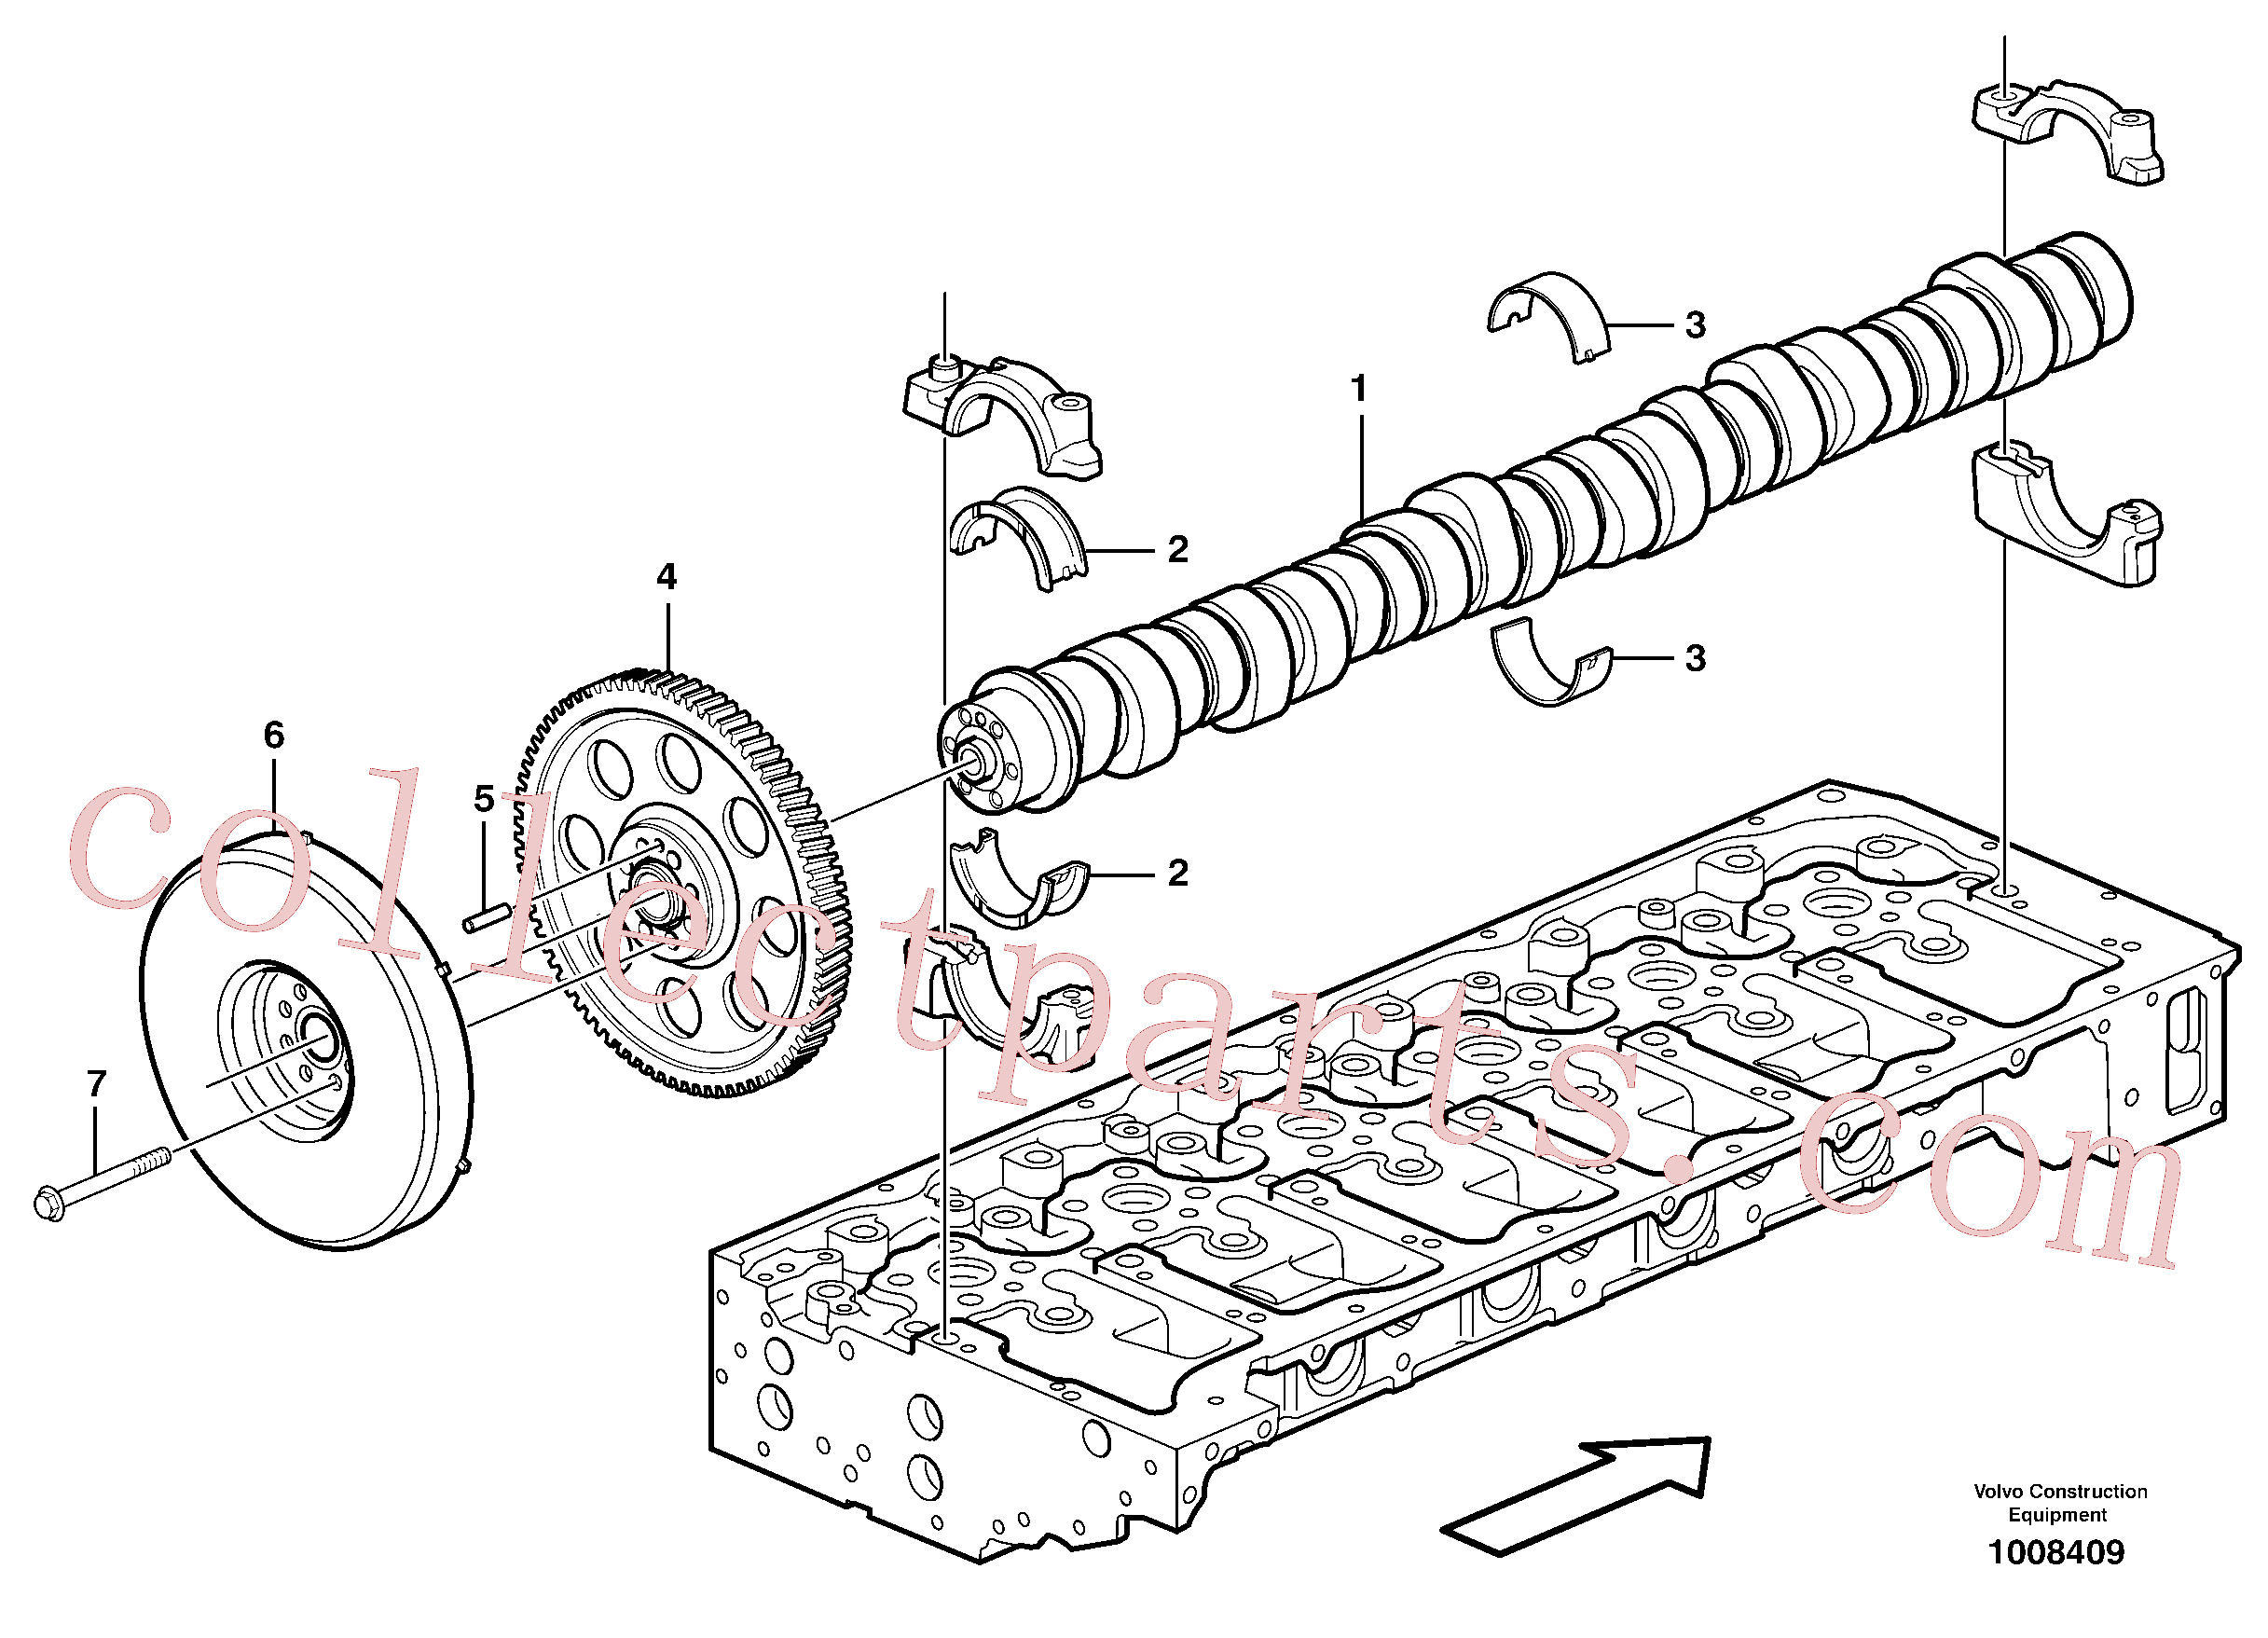 VOE13949736 for Volvo Camshaft(1008409 assembly)